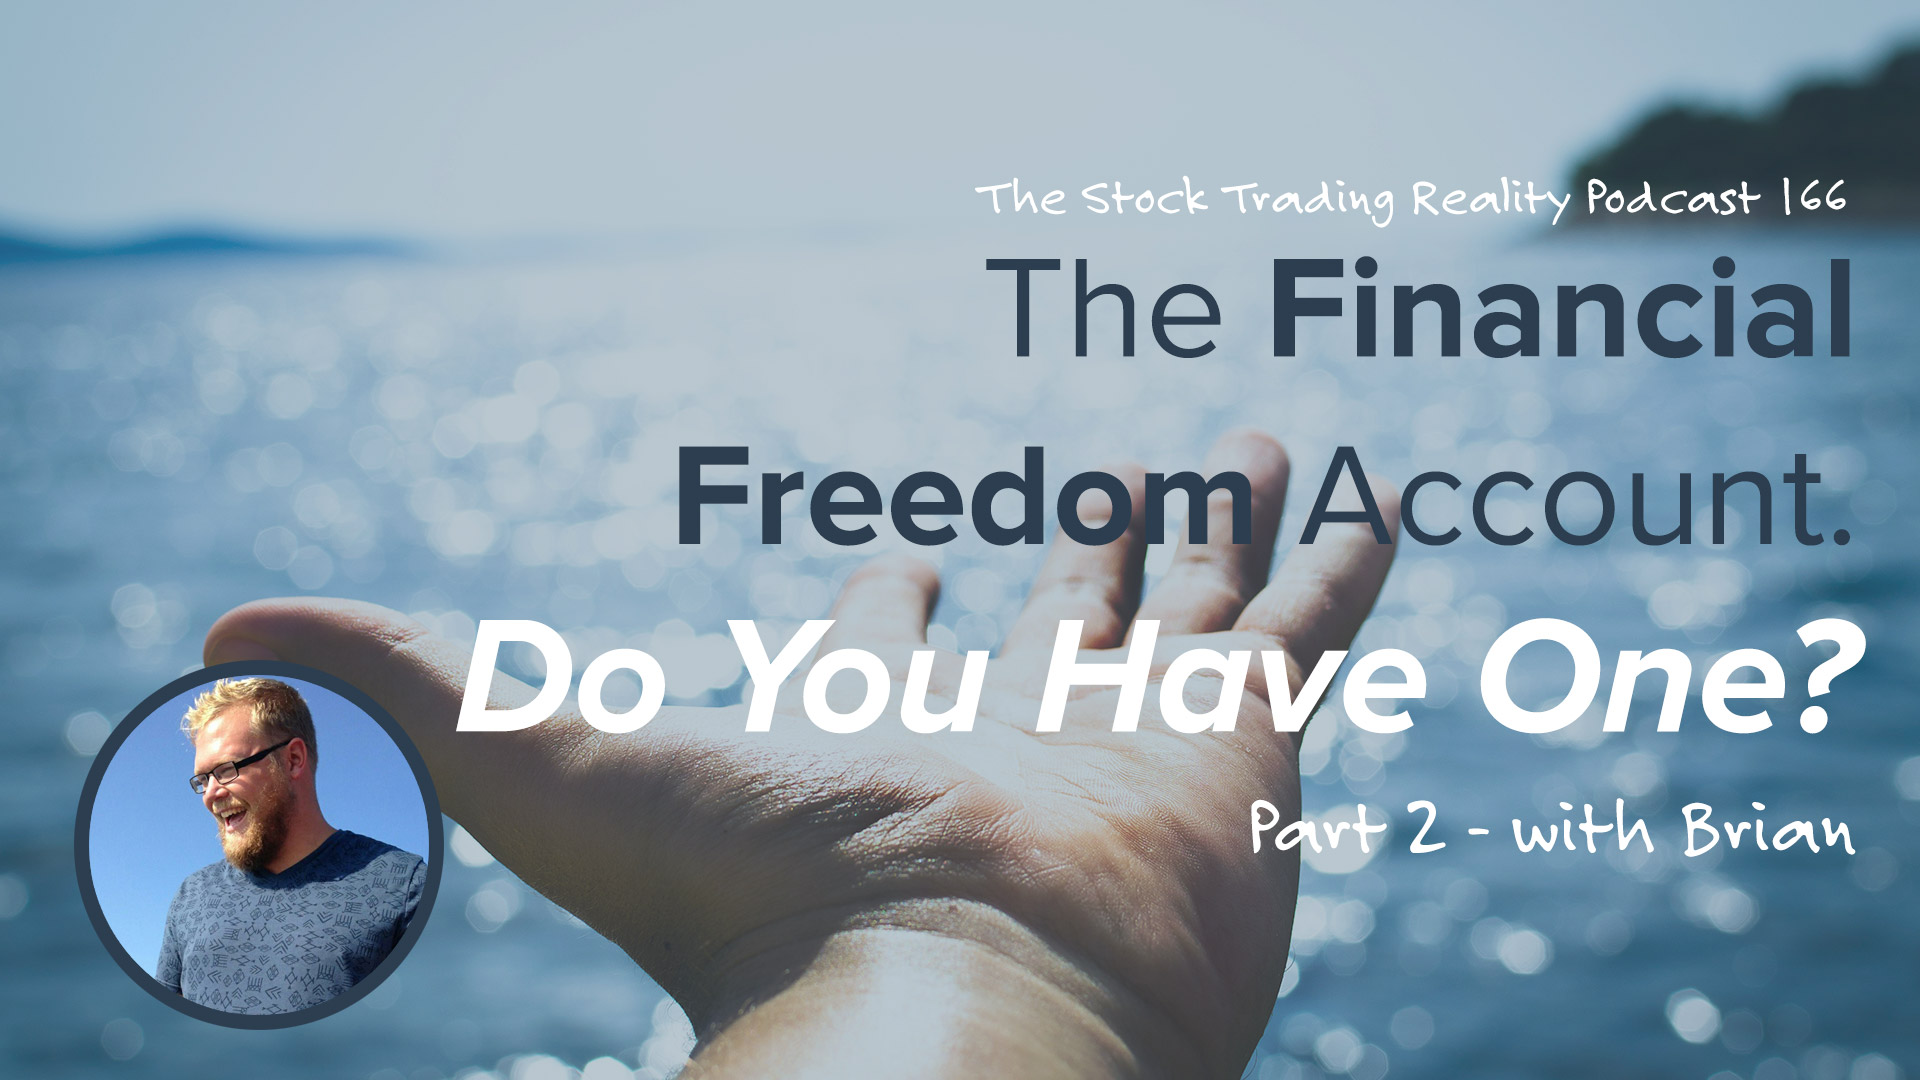 STR 166: The Financial Freedom Account. Do You Have One? (Part 2)